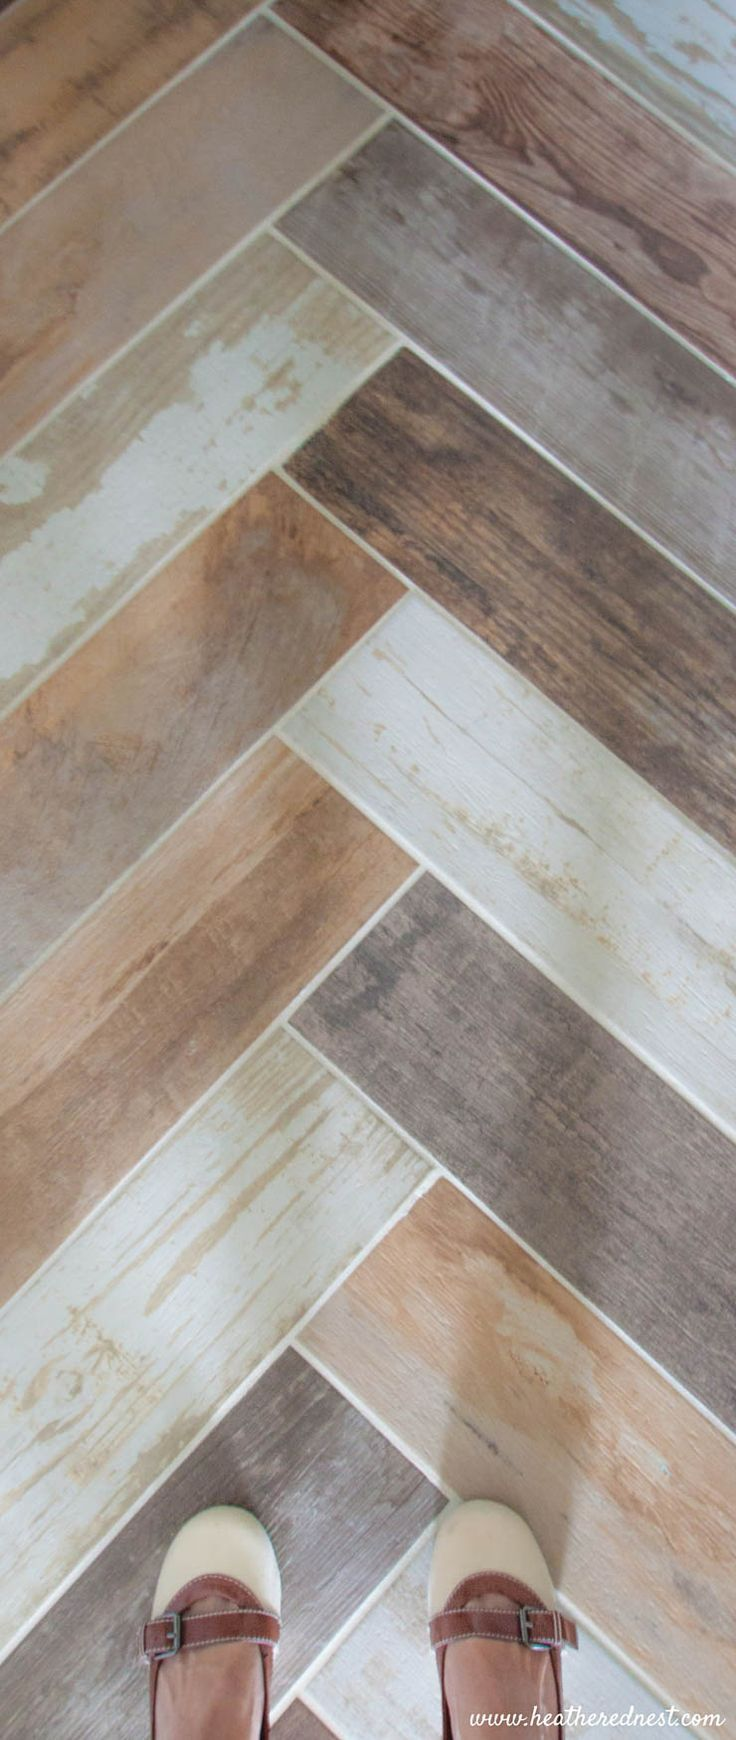 Faux Wood Tile Porcelain 6x24 From Home Depot Affiliate Http